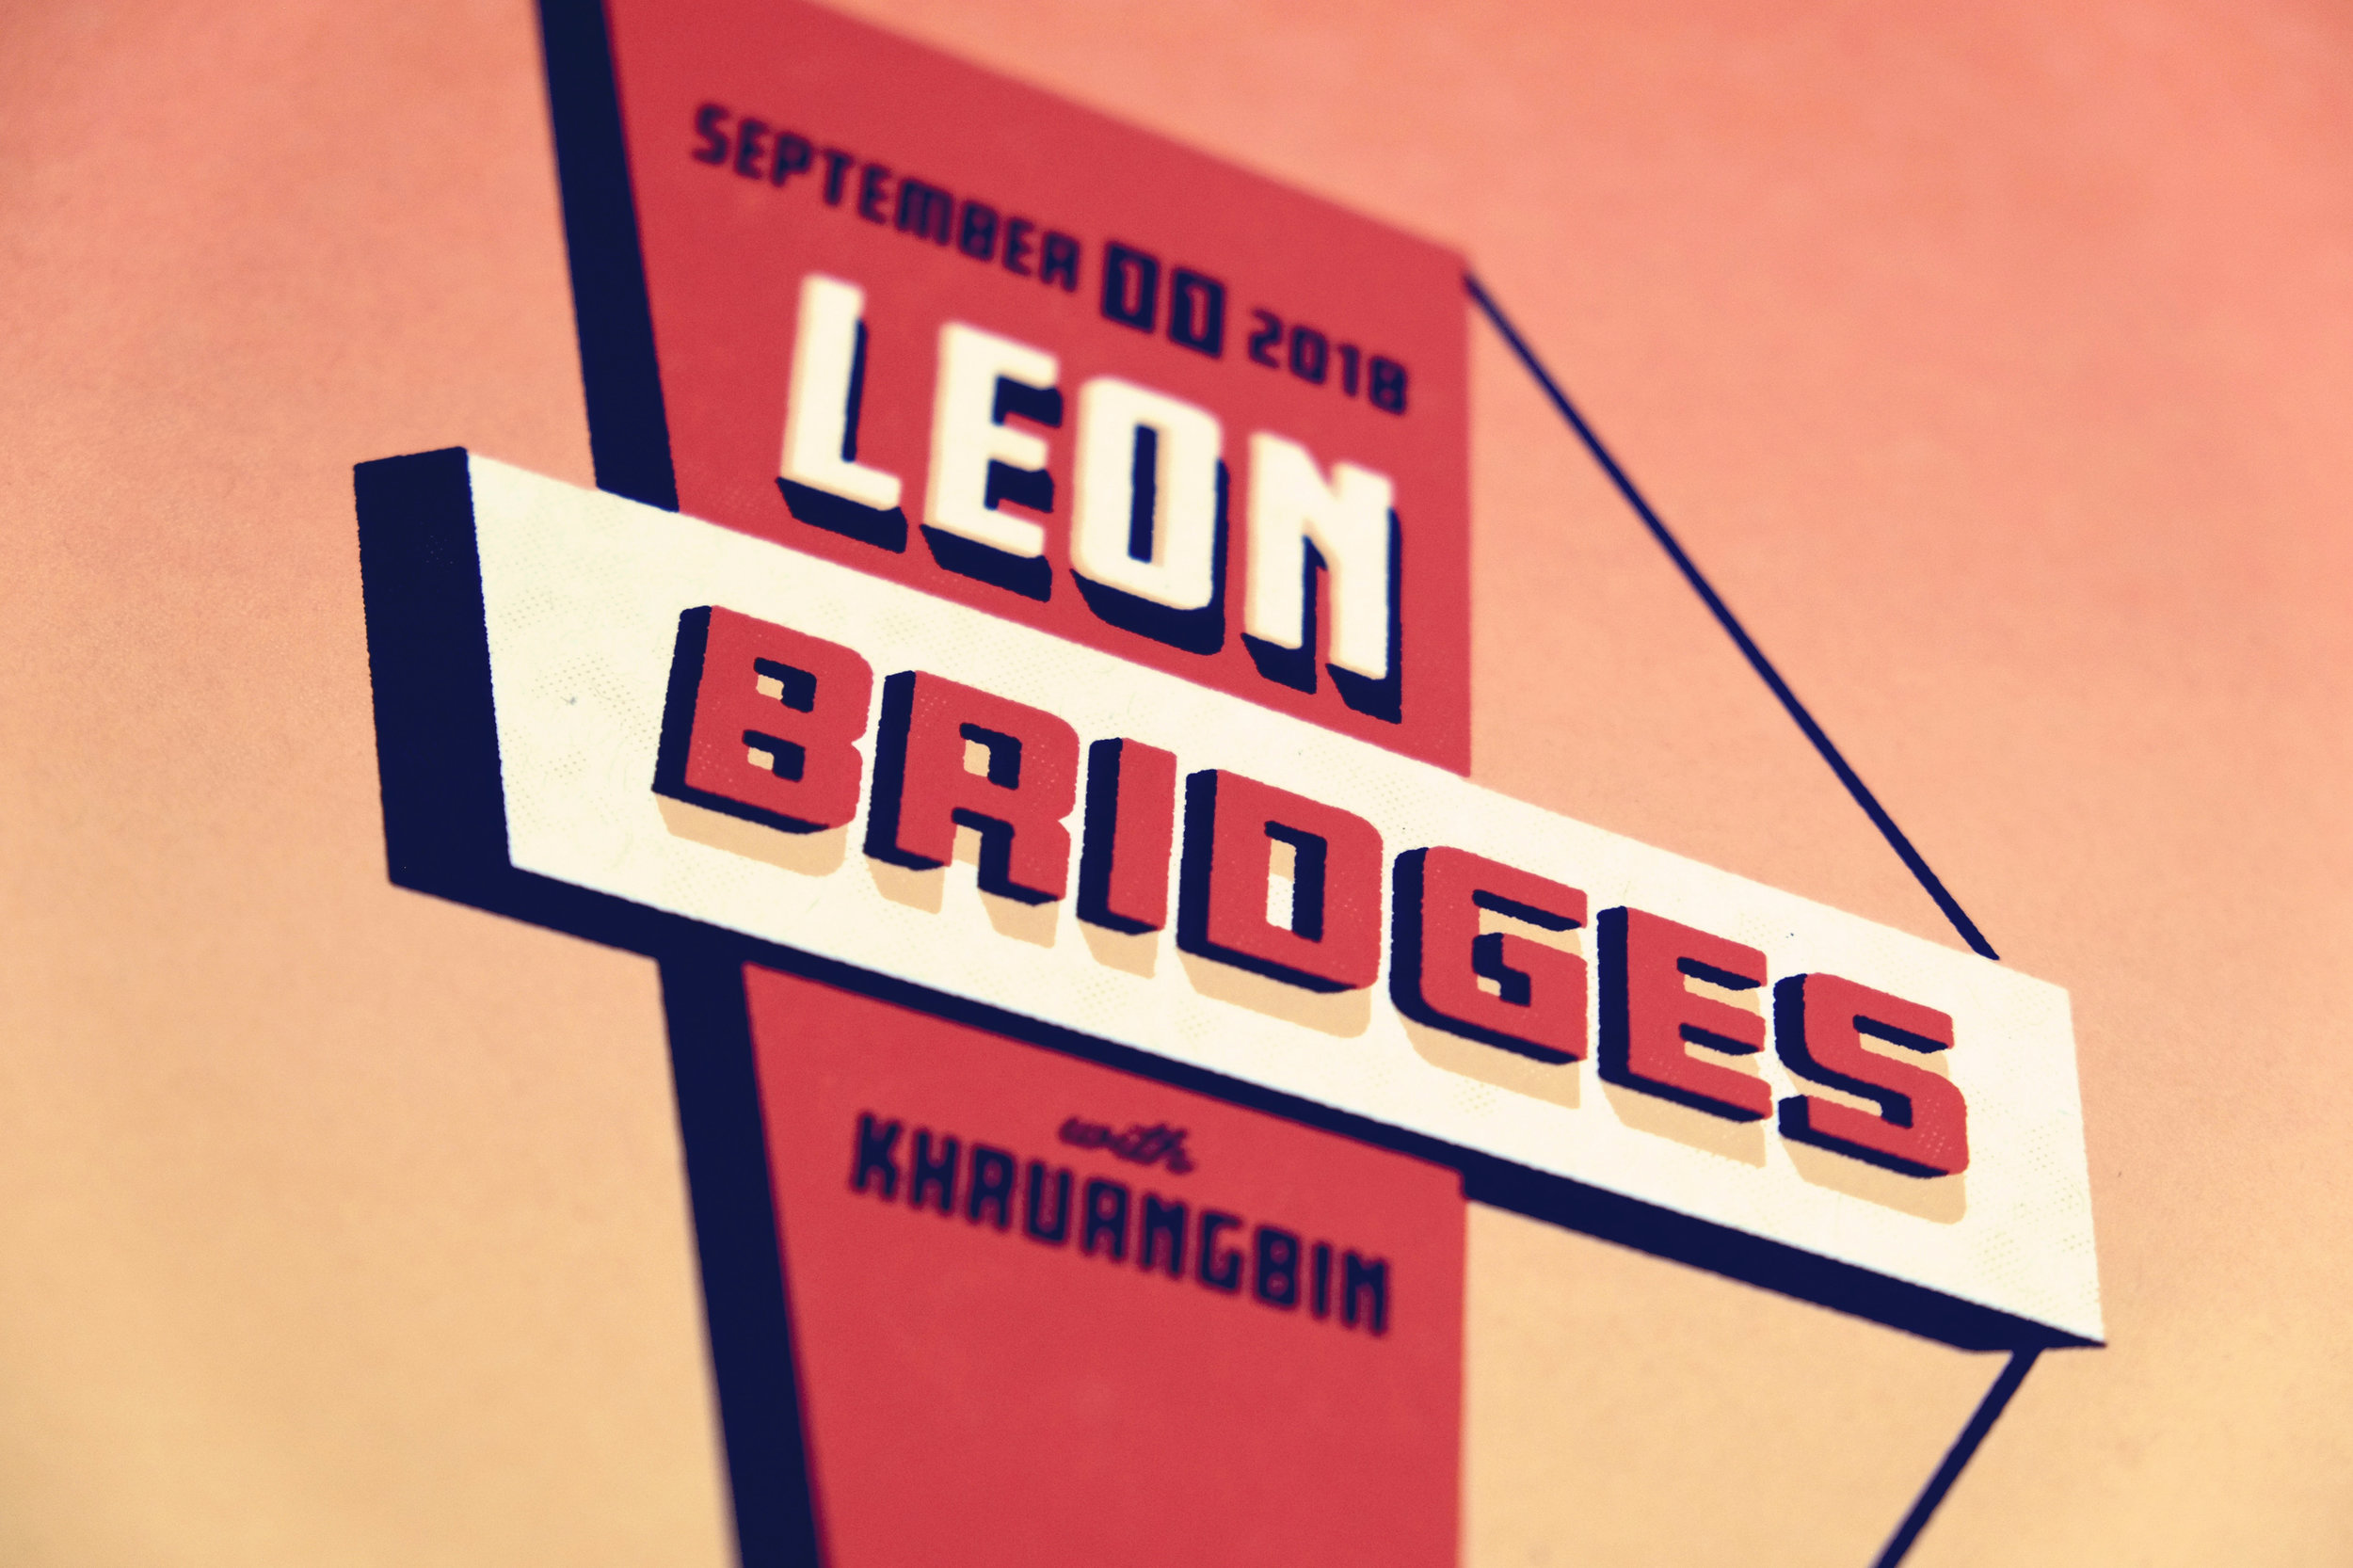 Leon Bridges Poster by DKNG